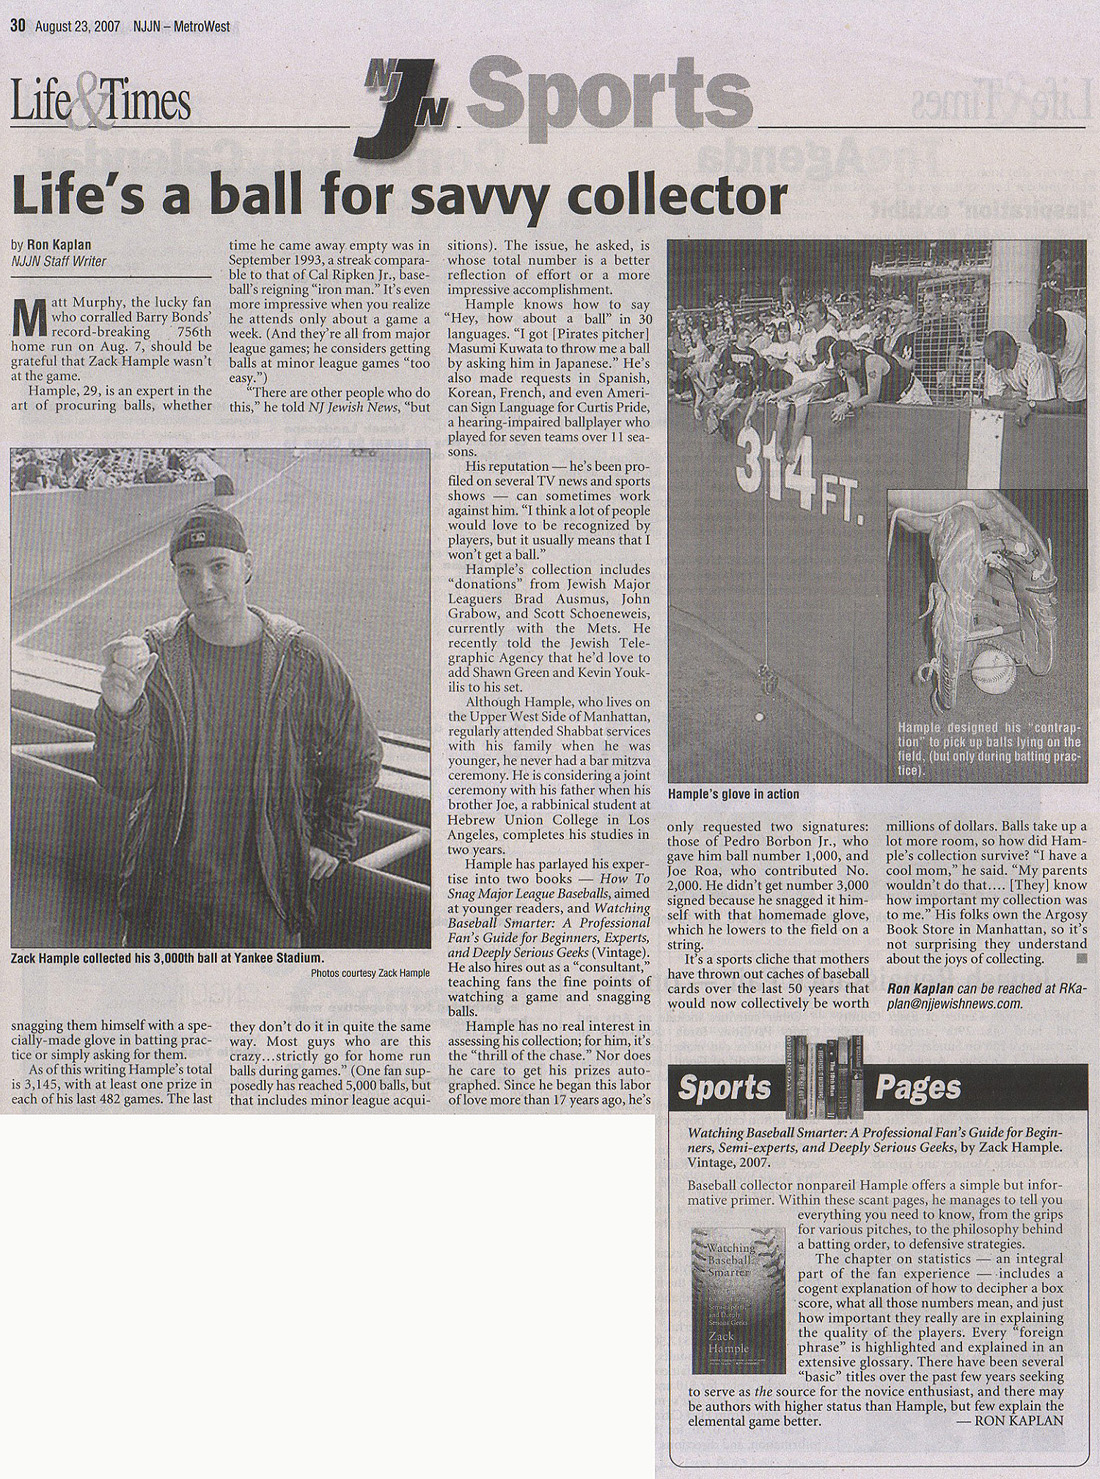 New Jersey Jewish News August 23 2007 Zack Hample